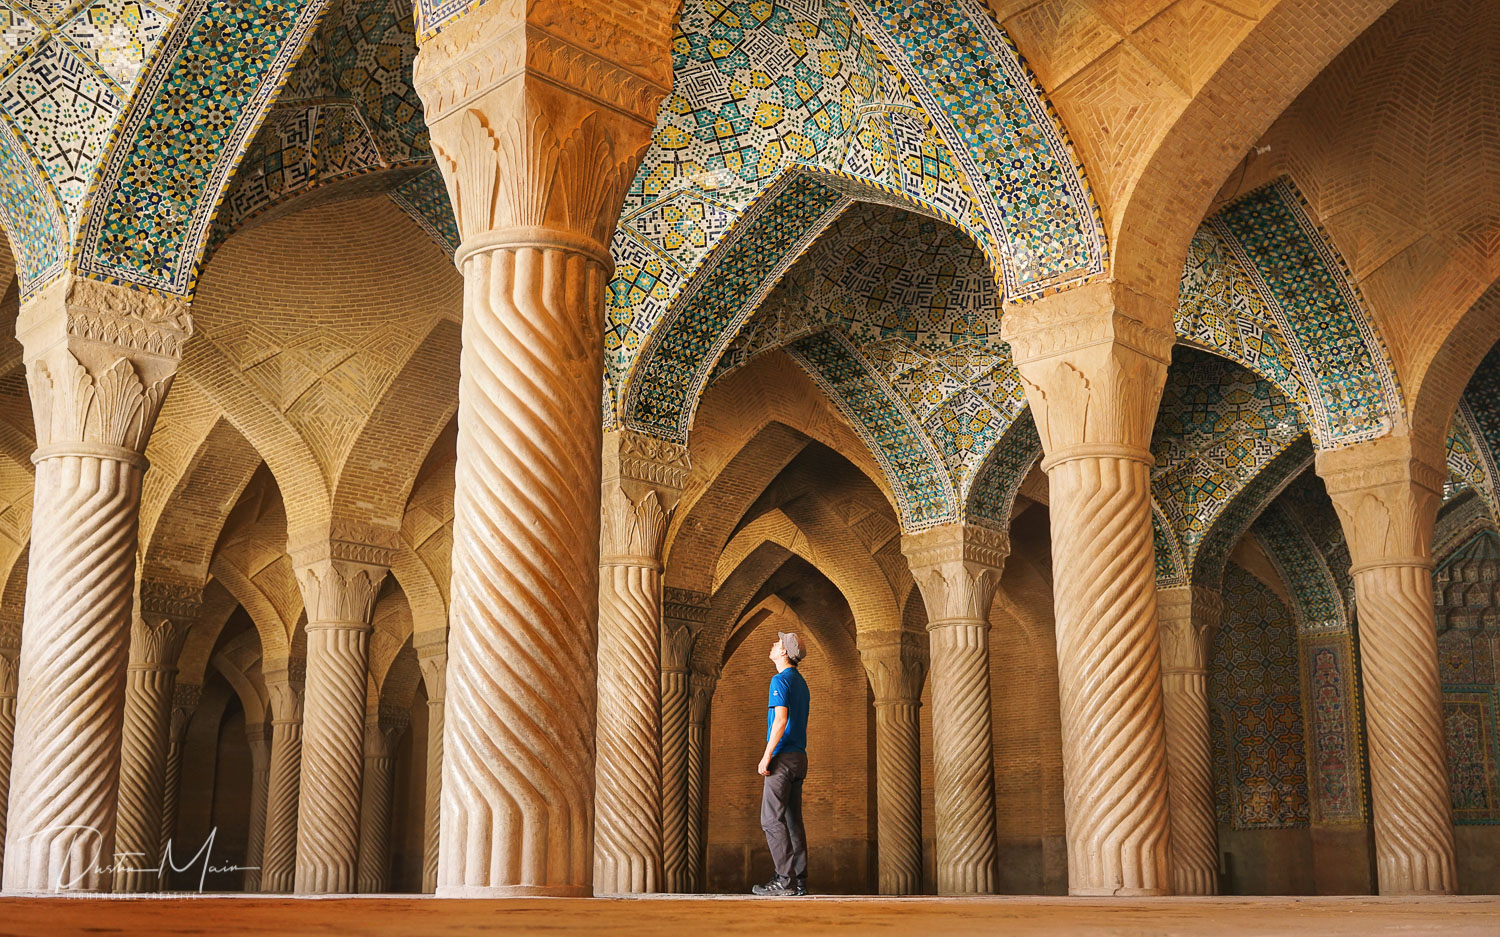 Self portrait in Vakil mosque in Shiraz, Iran. Shot with Sony Zeiss 35mm 2.8 © Dustin Main 2017